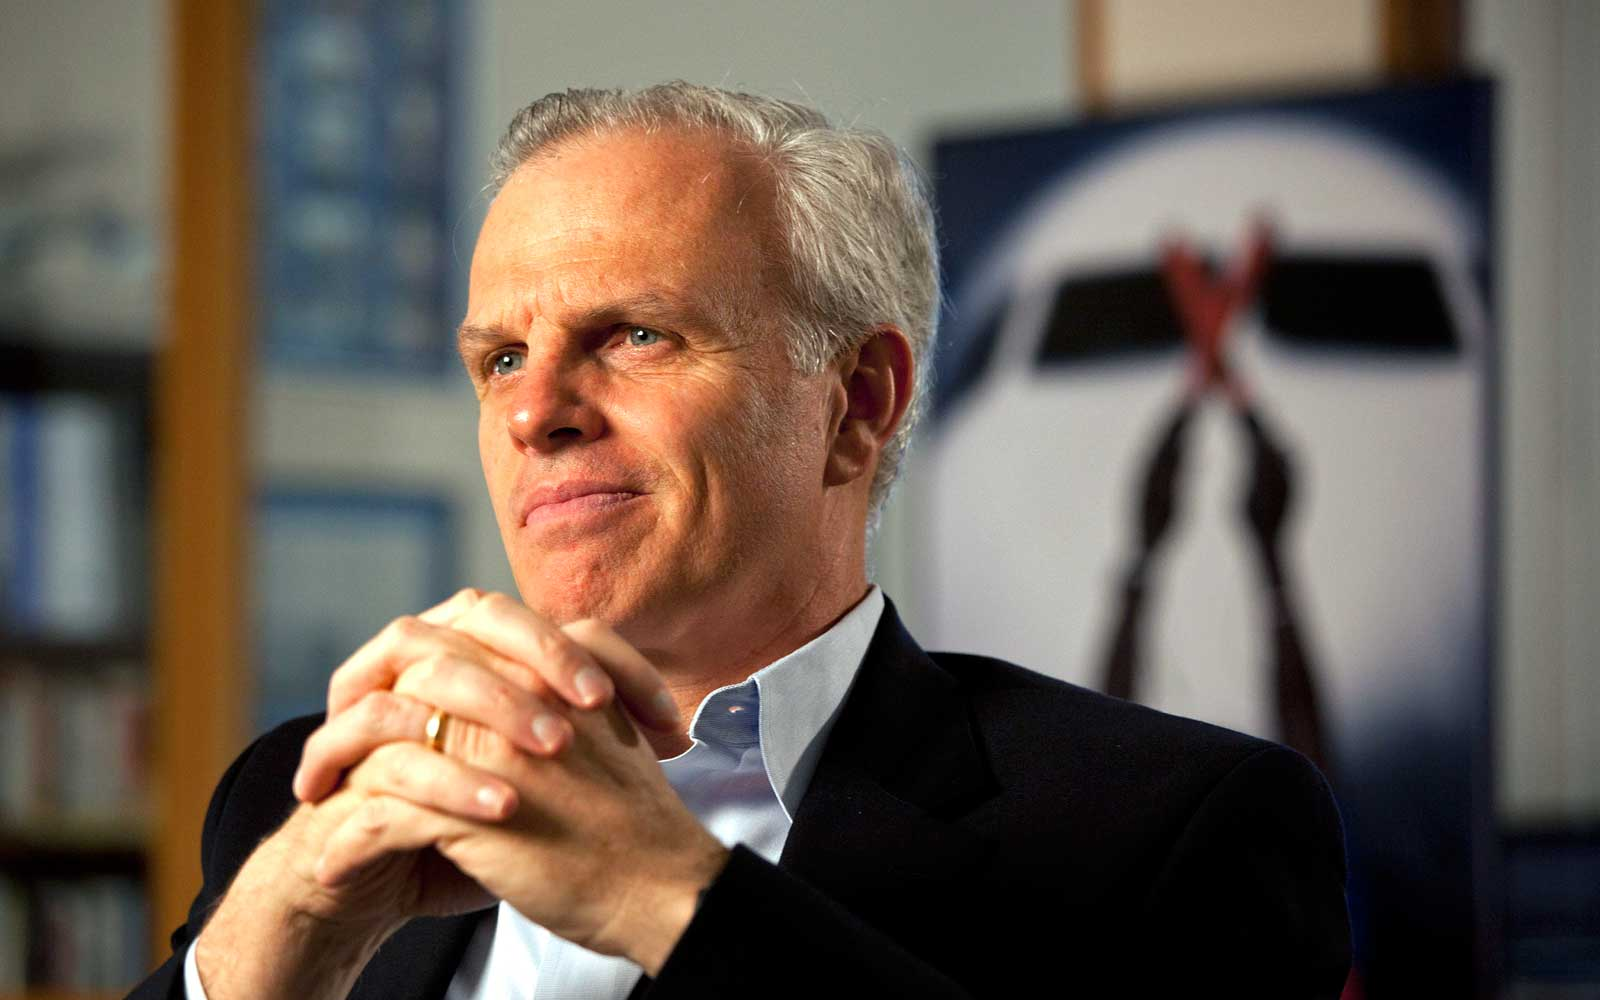 JetBlue's Founder Will Bring a New Budget Airline to the U.S.